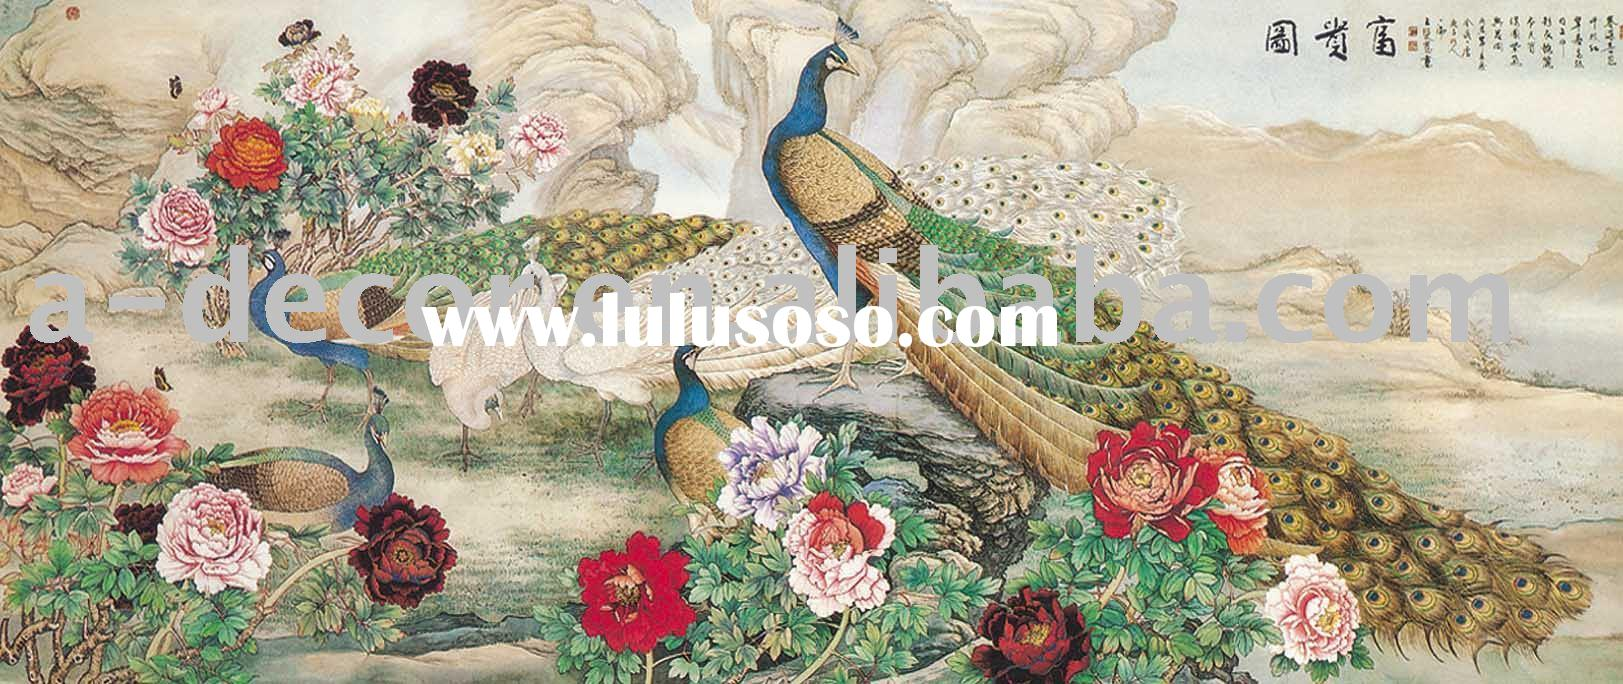 Chinese painting mural for sale price taiwan for Cost of mural painting